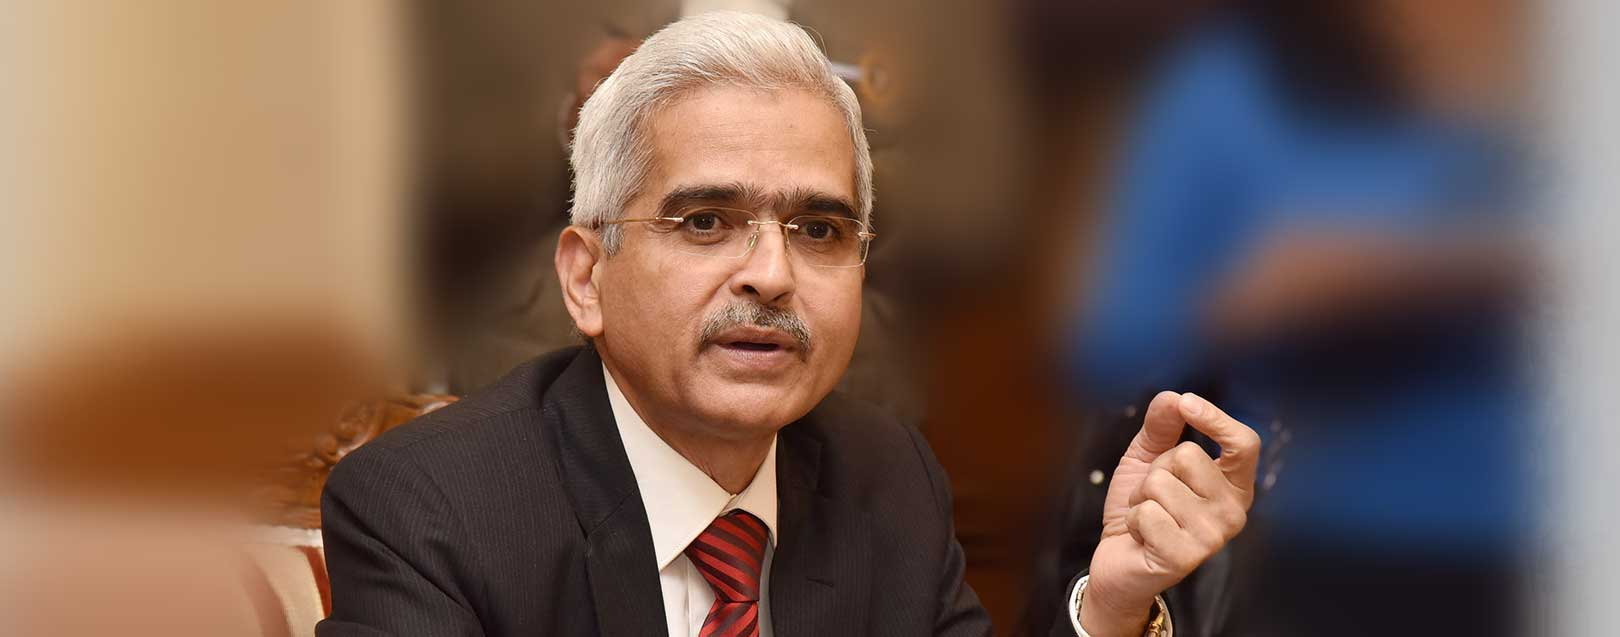 Govt yet to come to a decision on bank transactions tax: Shaktikanta Das